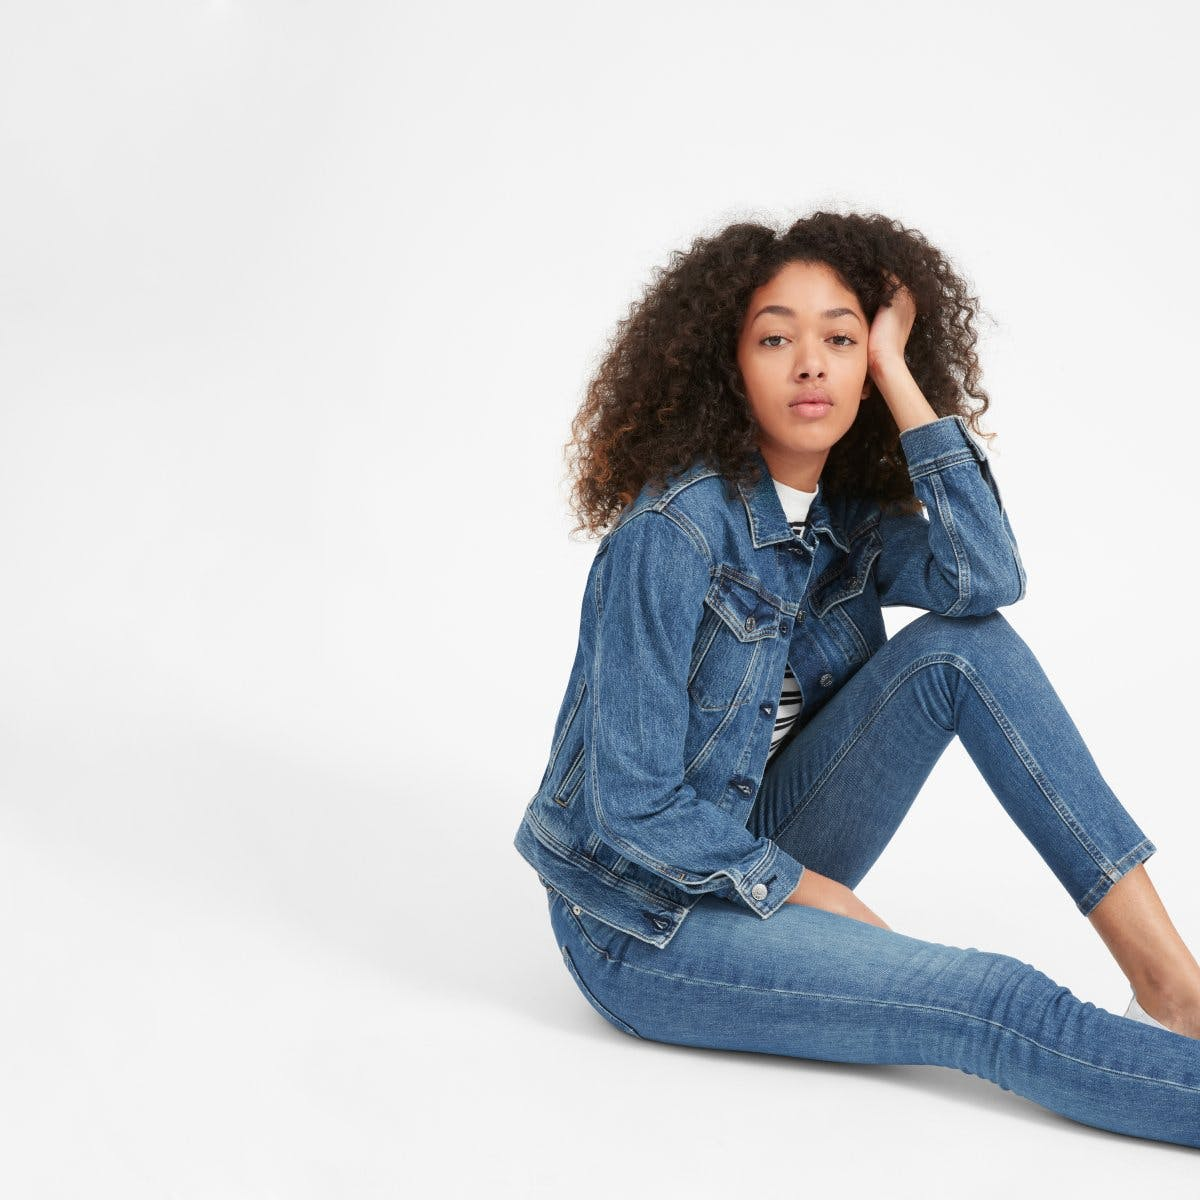 everlane, everlane jeans, everlane denim, denim jacket, washed blue, jean jacket, sustainable denim, japanese denim, denimblog, denim blog